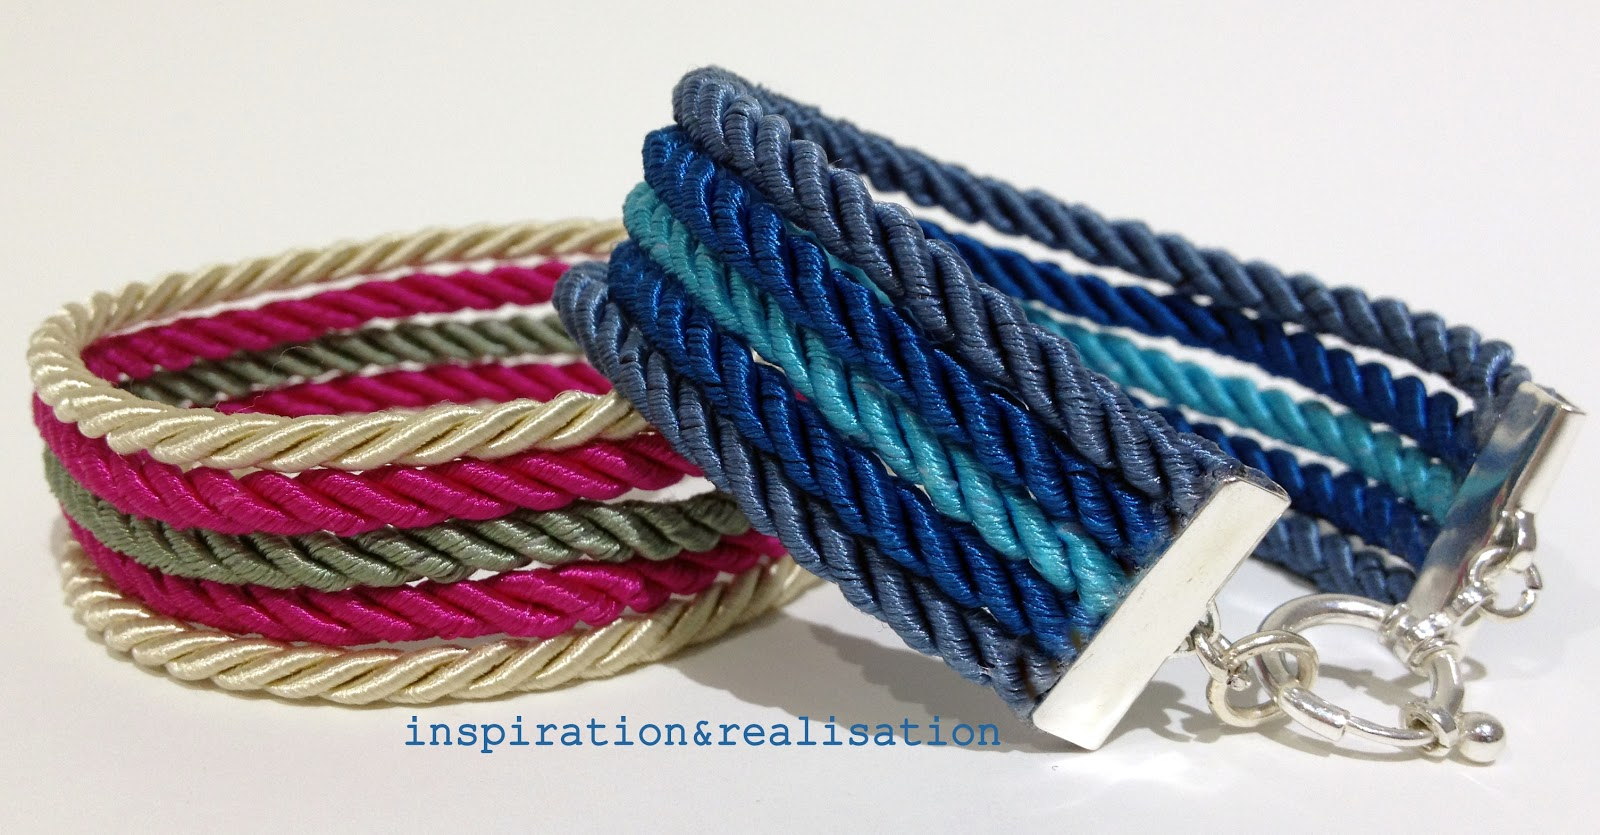 How To Make Coiled And Twisted Wire Bracelet Tutorials The | LONG ...